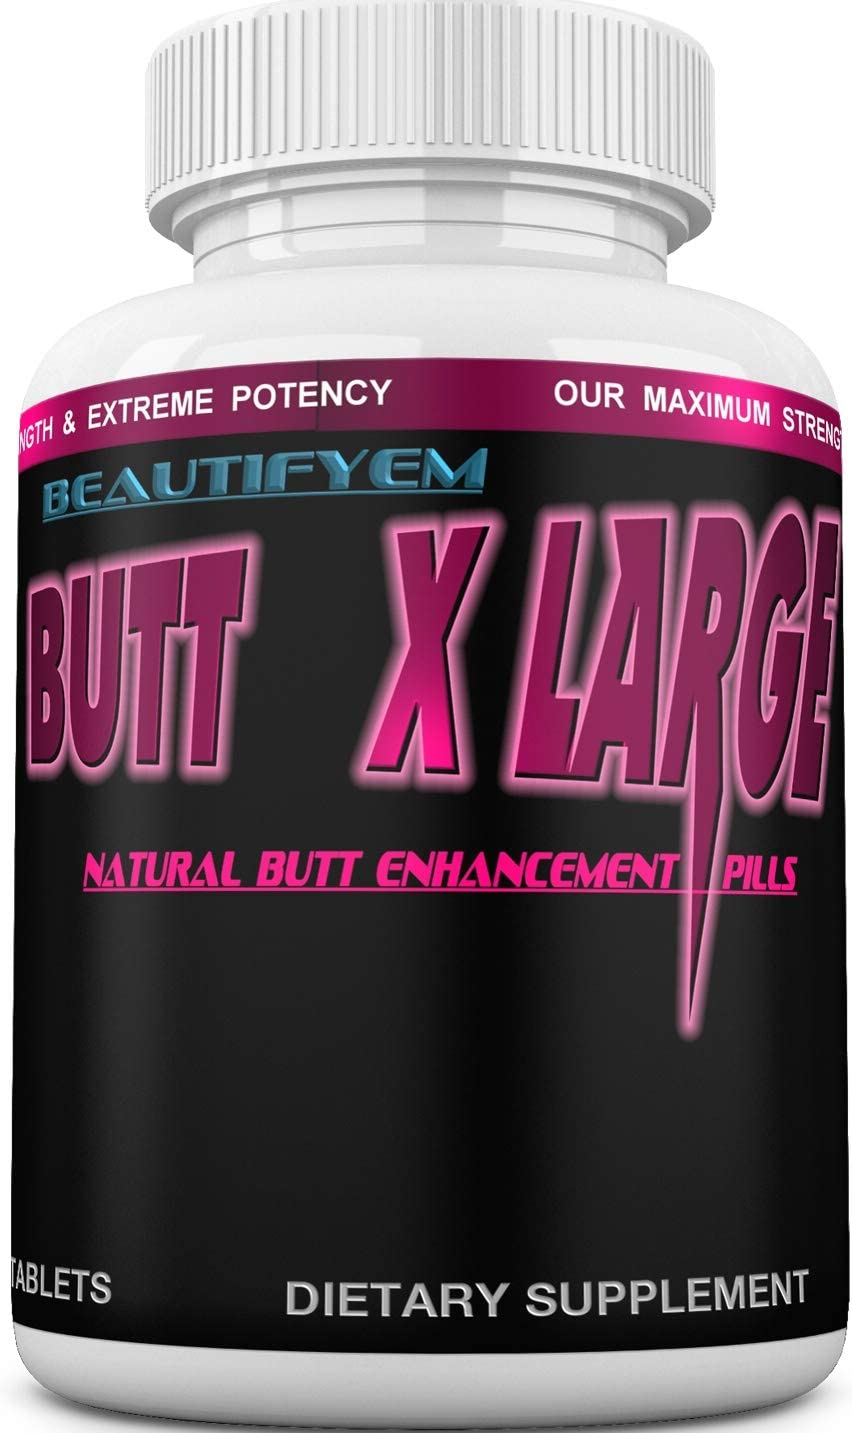 Butt X-Large Butt Enlargement, Booty Enhancement